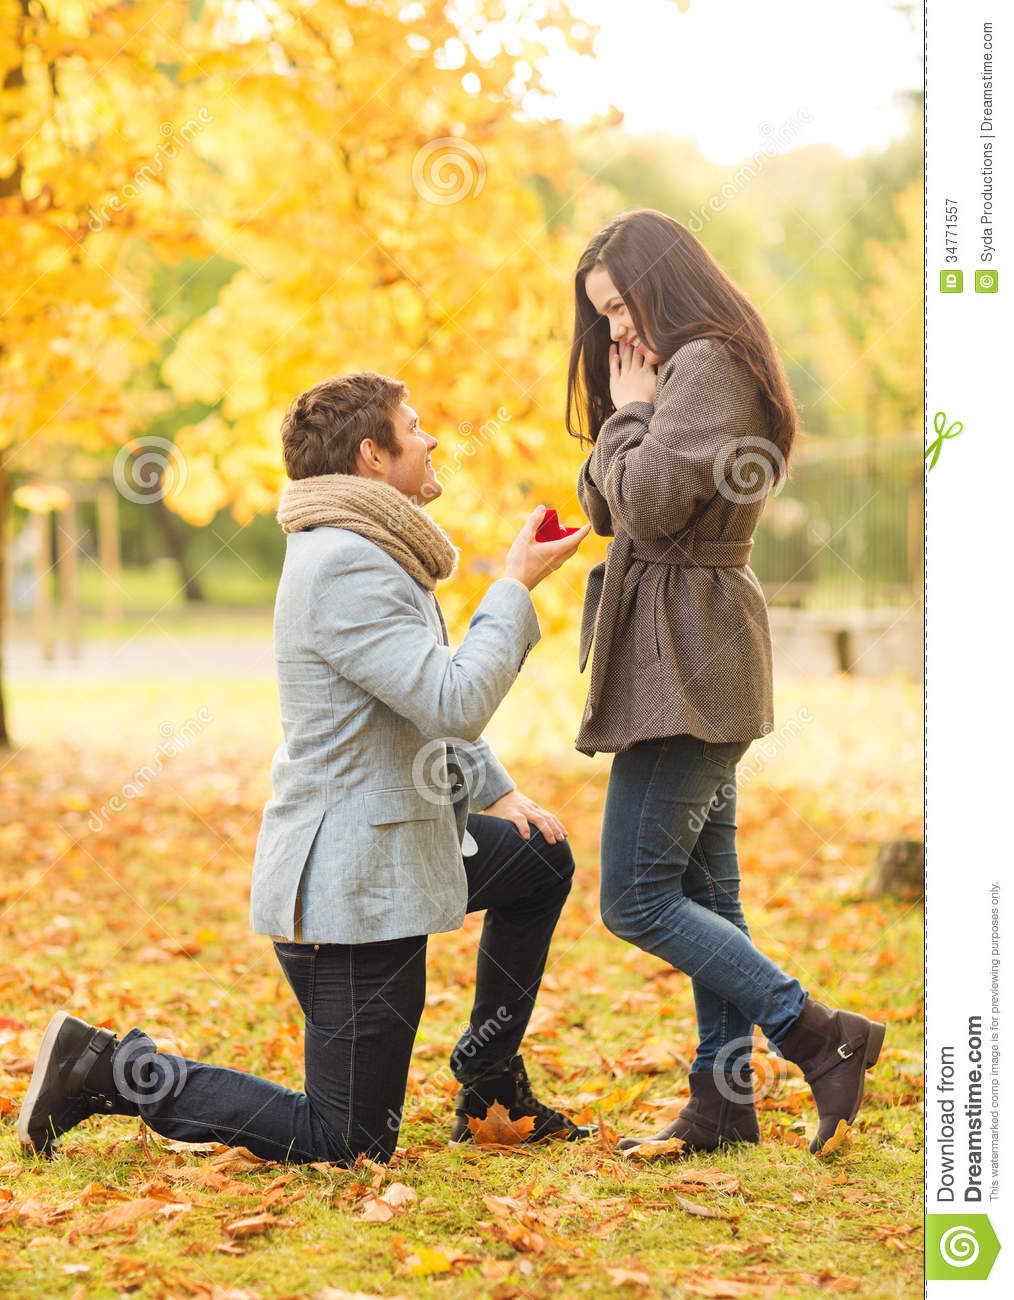 Girl Propose To Boy Wallpaper With Quotes Man Proposing To A Woman In The Autumn Park Stock Image